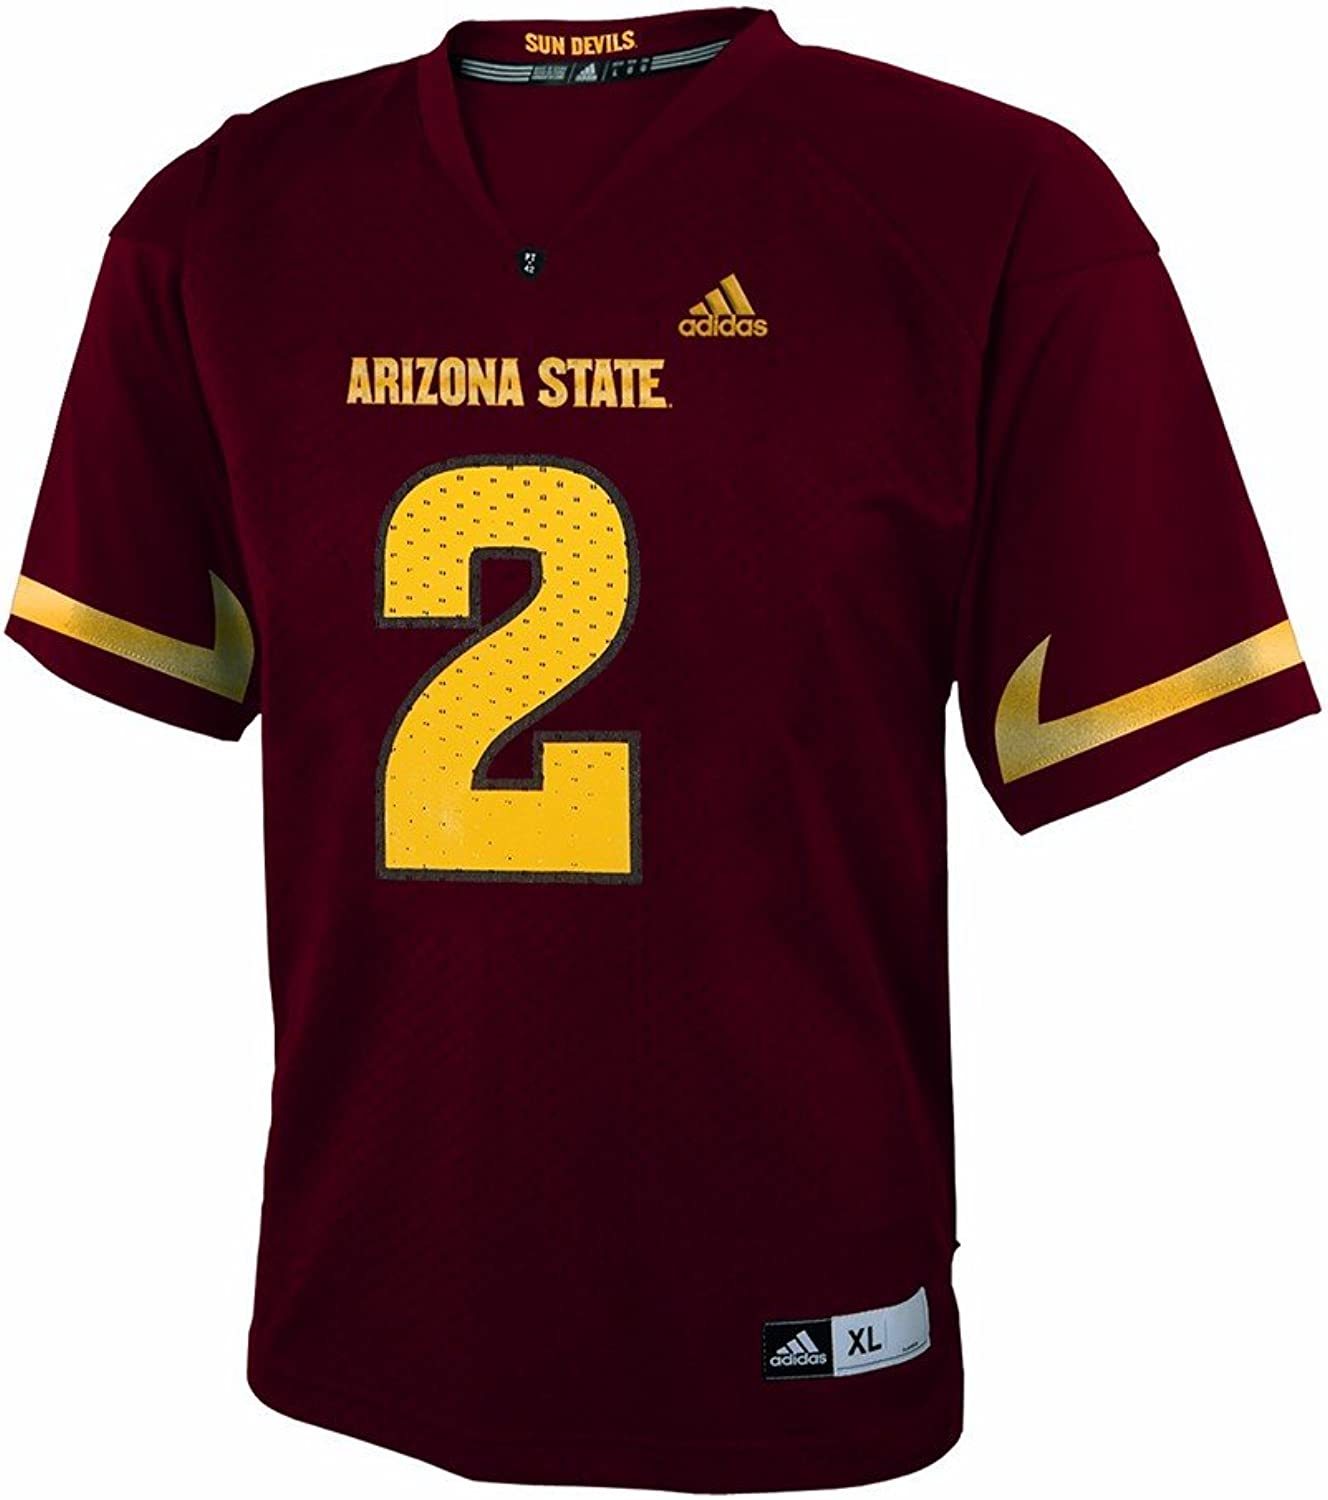 Adidas Arizona State Sun Devils NCAA Maroon Official Home  2 Replica Football Jersey for Infant